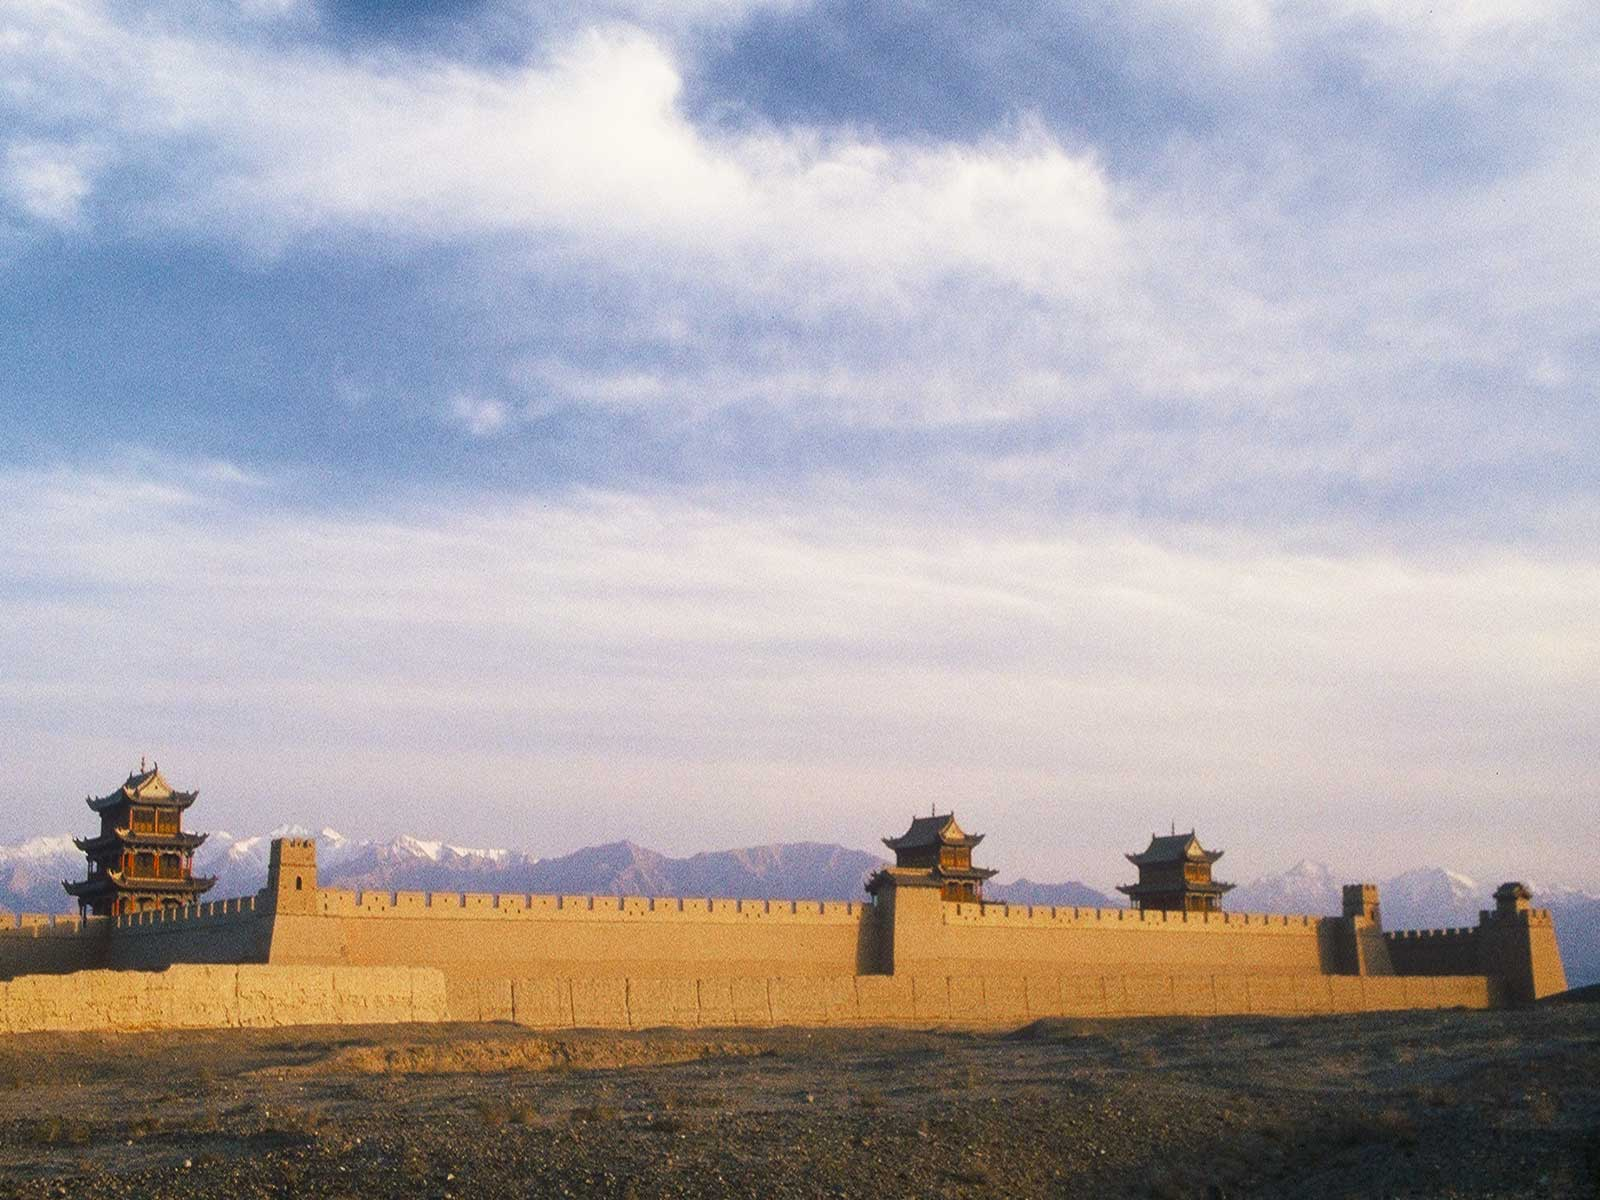 Jiayuguan Fort sunrise- Great Wall - Silk Road Photo Journal - Steven Andrew Martin - Study abroad research